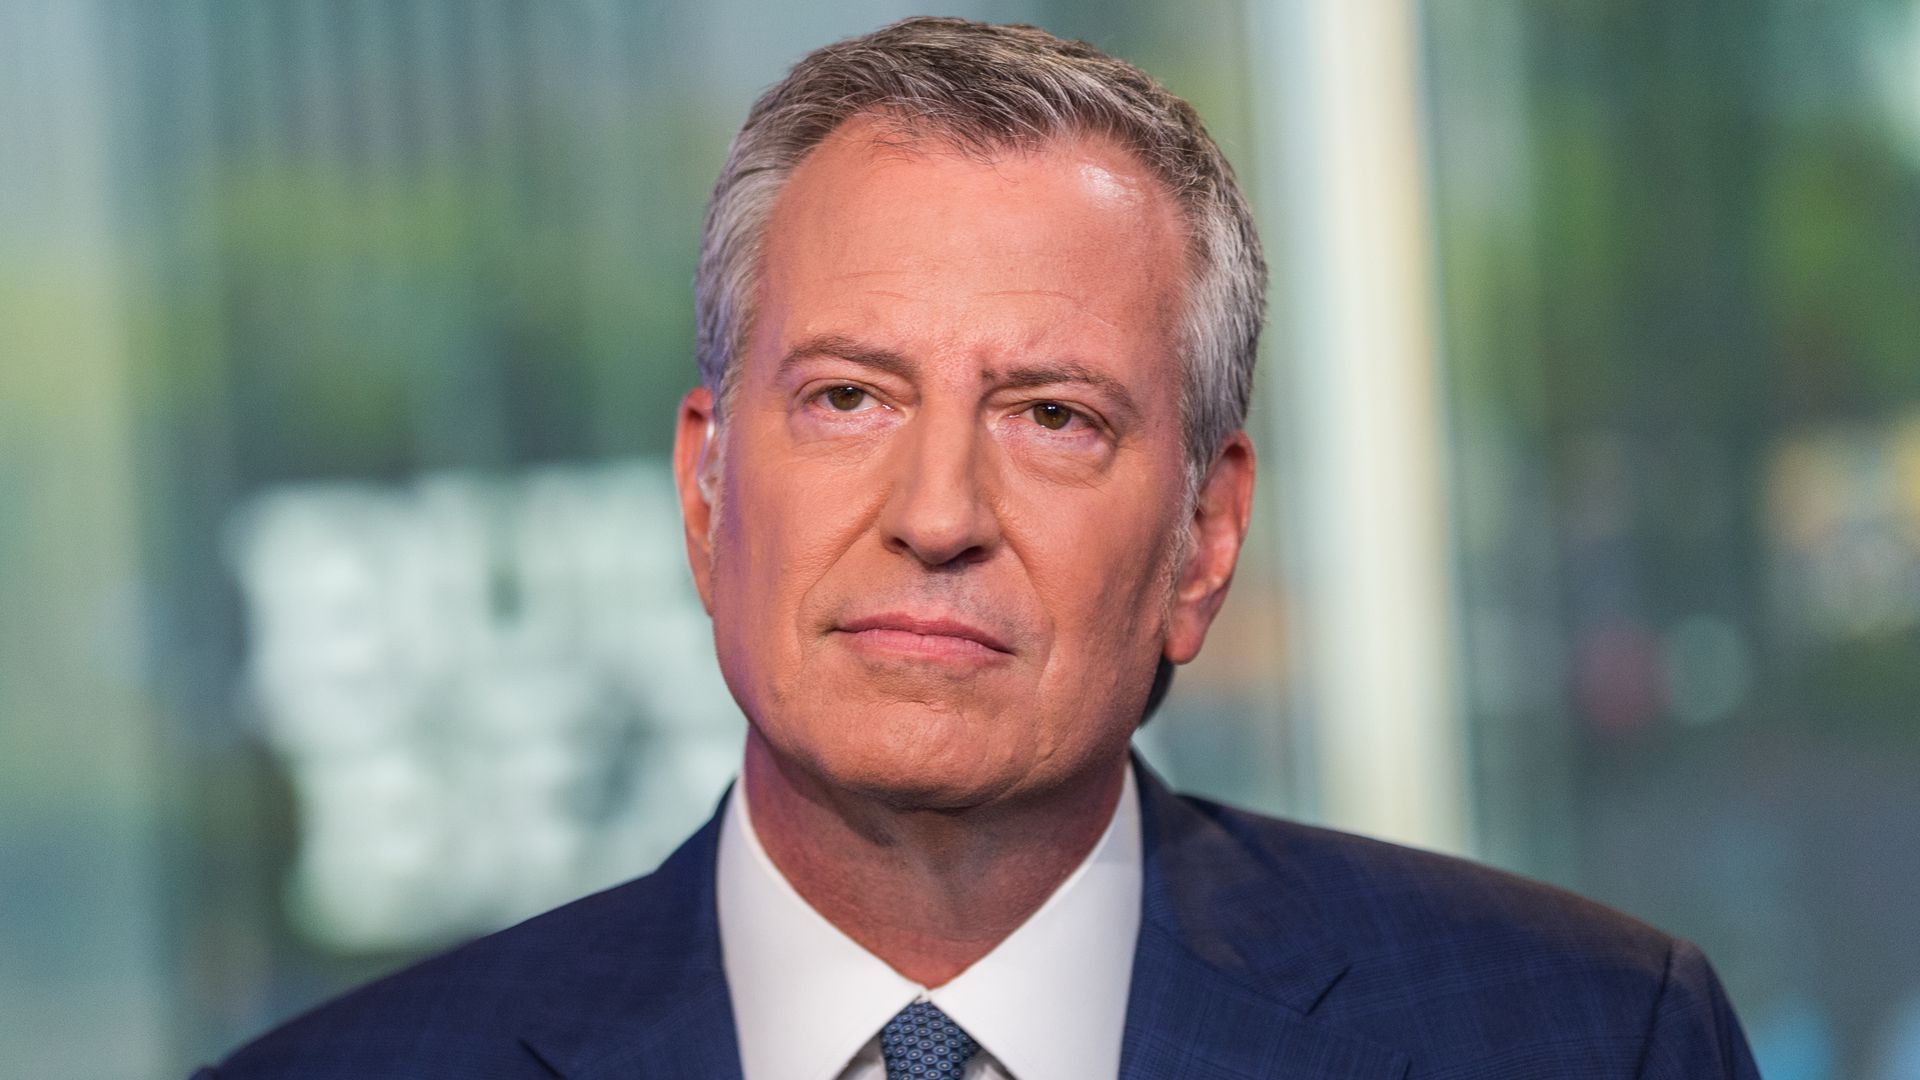 Bill de Blasio drops out of 2020 presidential race